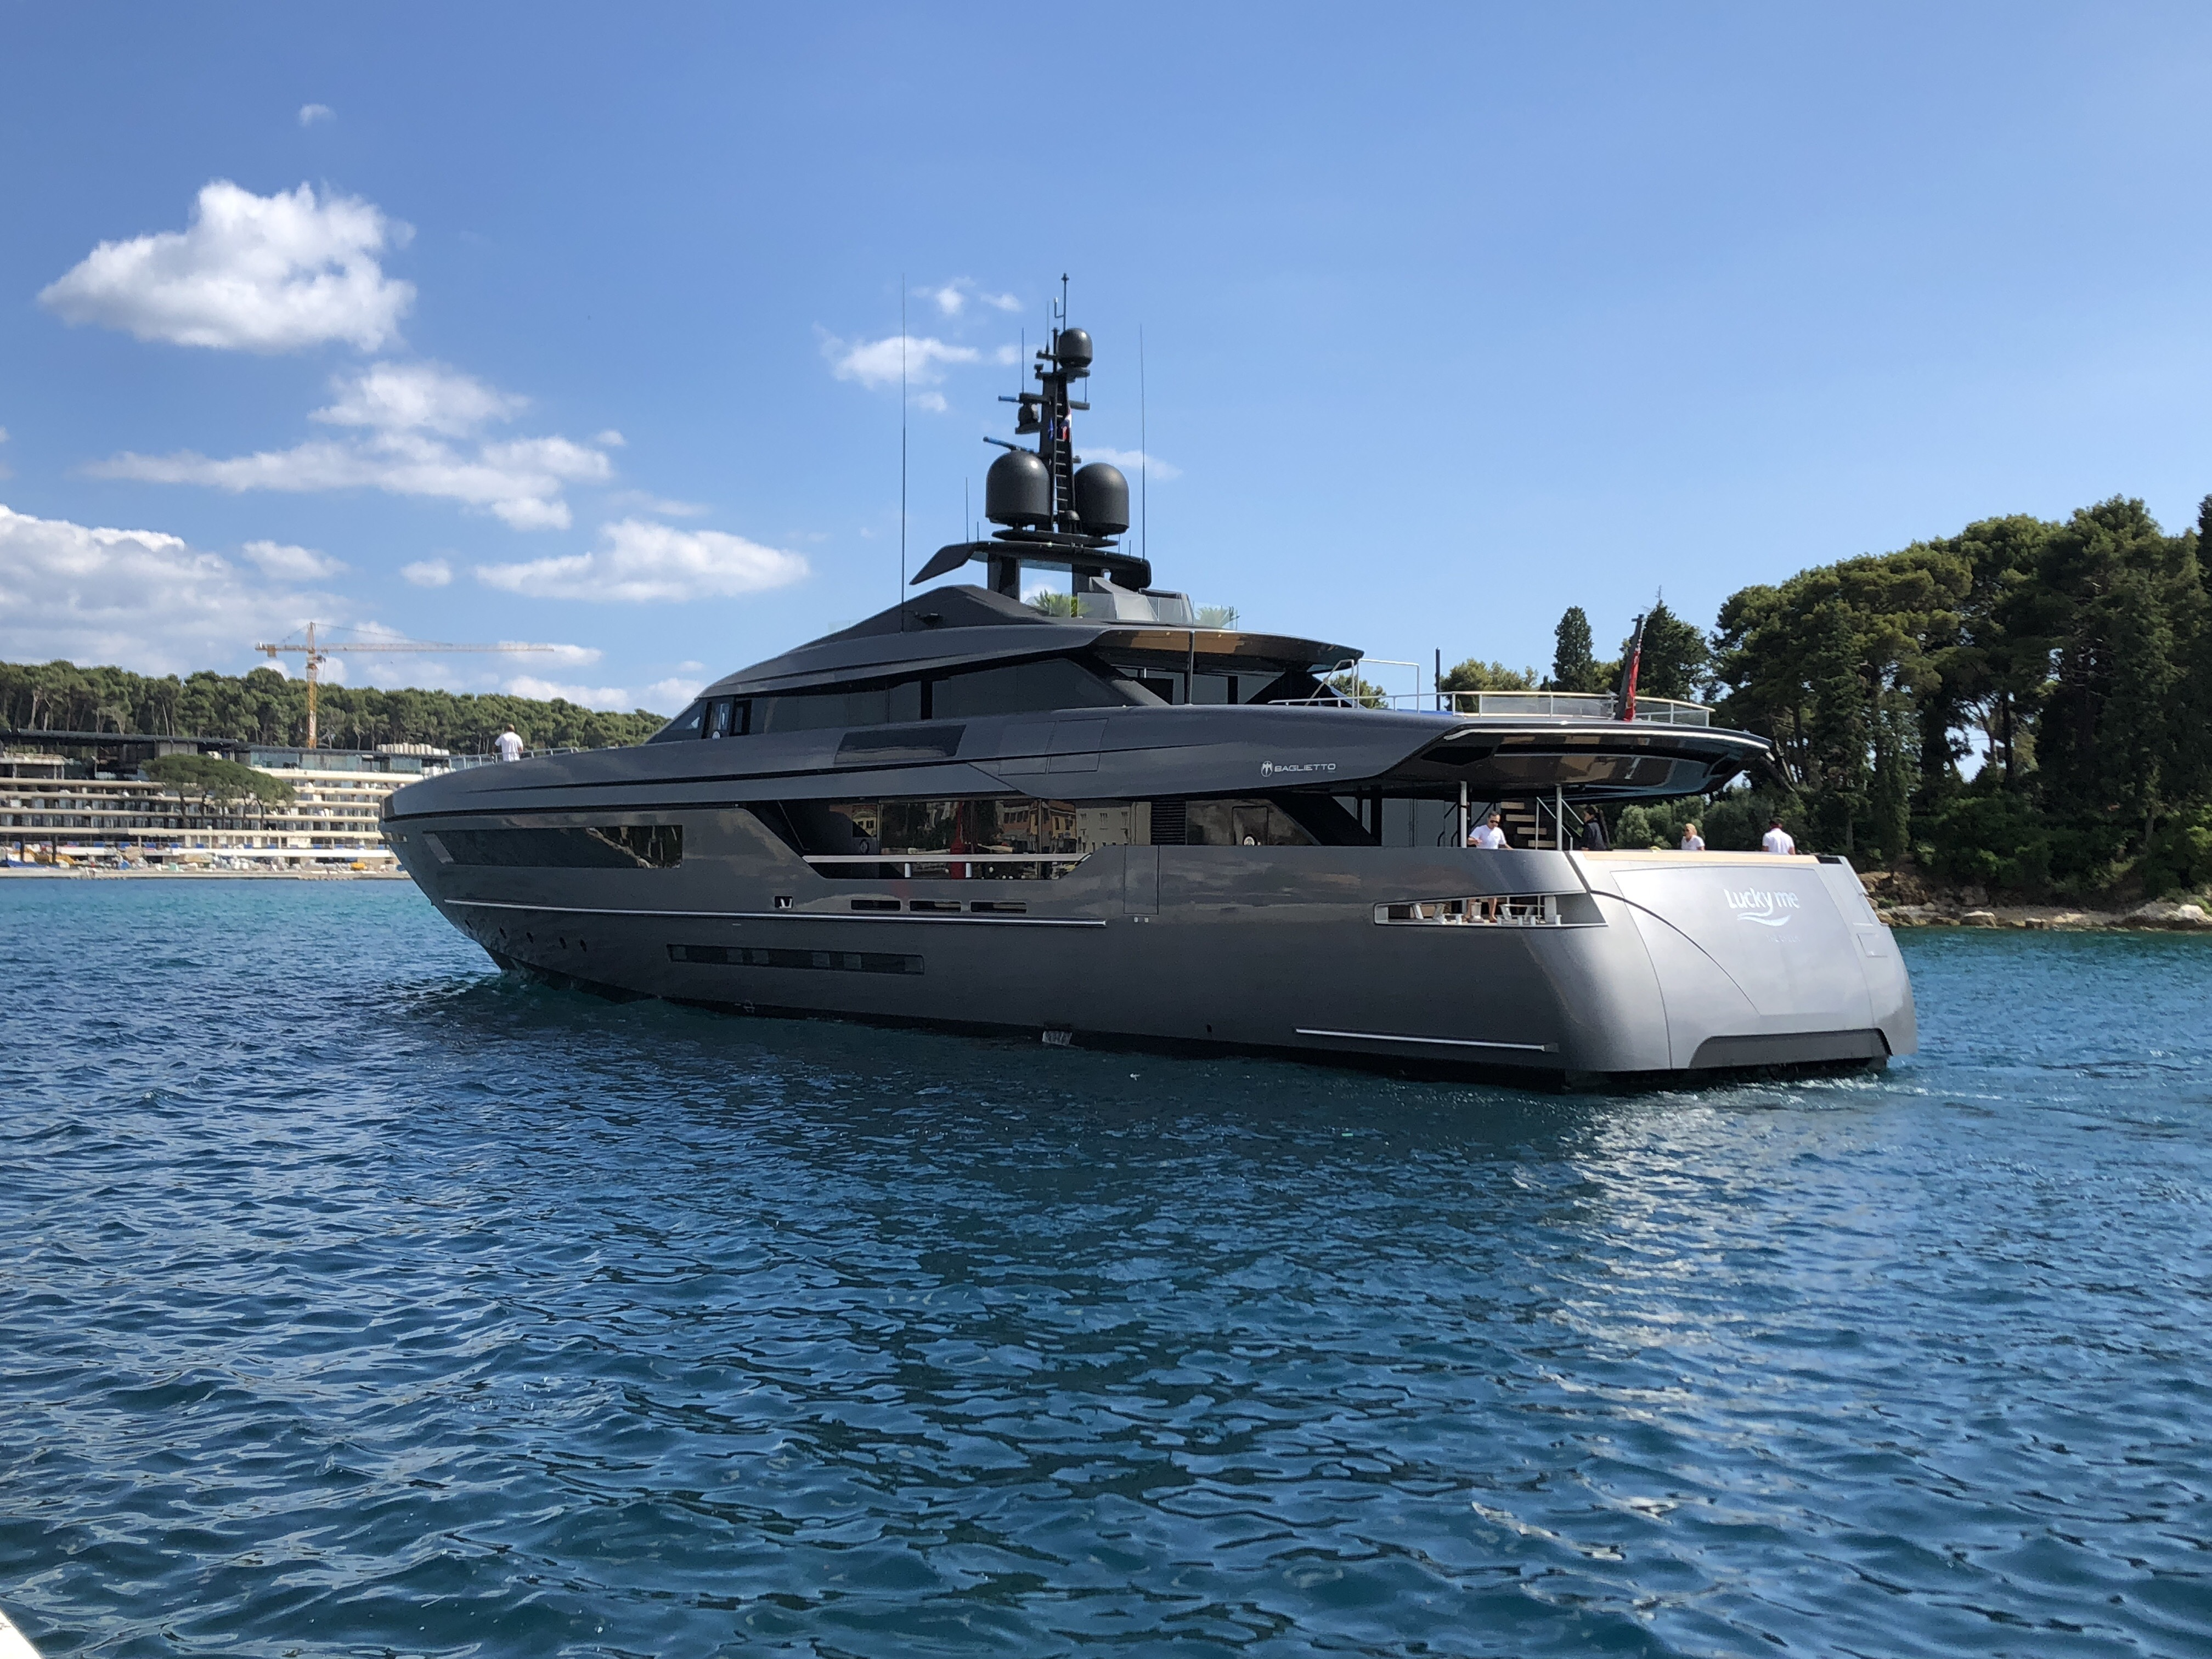 46 Metre Superyacht Lucky Me By Baglietto Spotted In